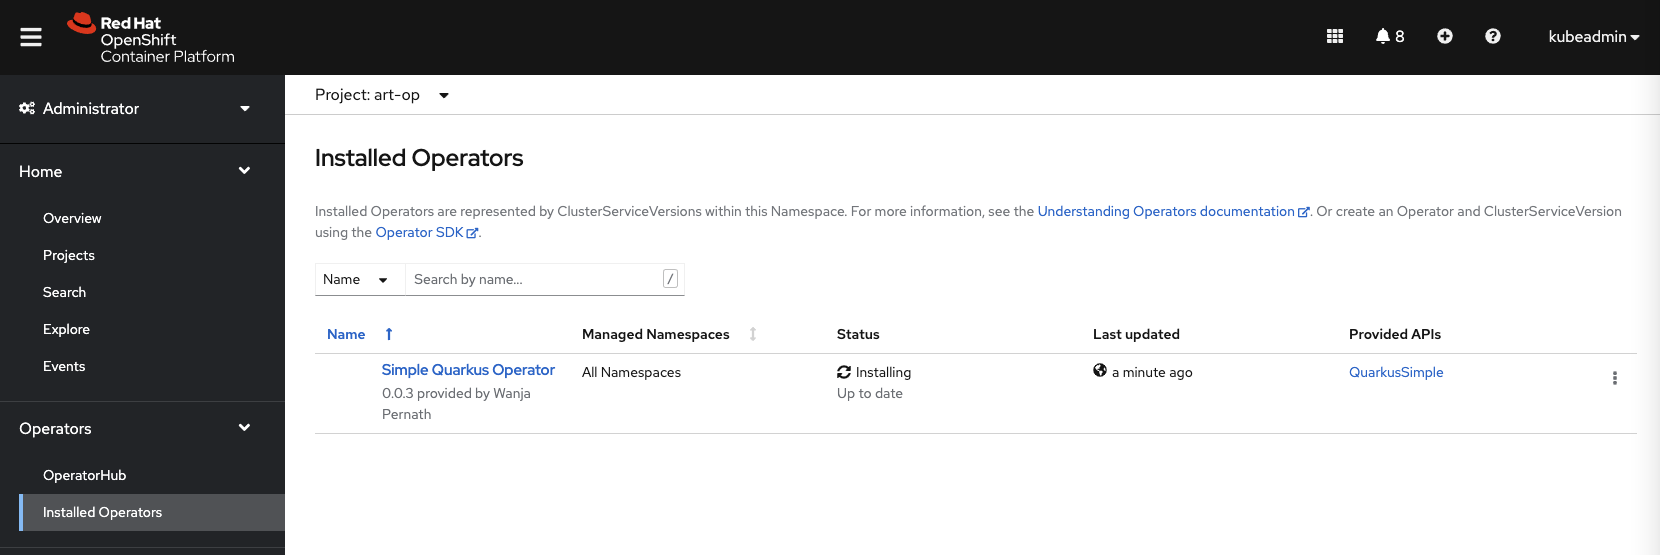 Image 11: The installed Operator in OpenShift UI